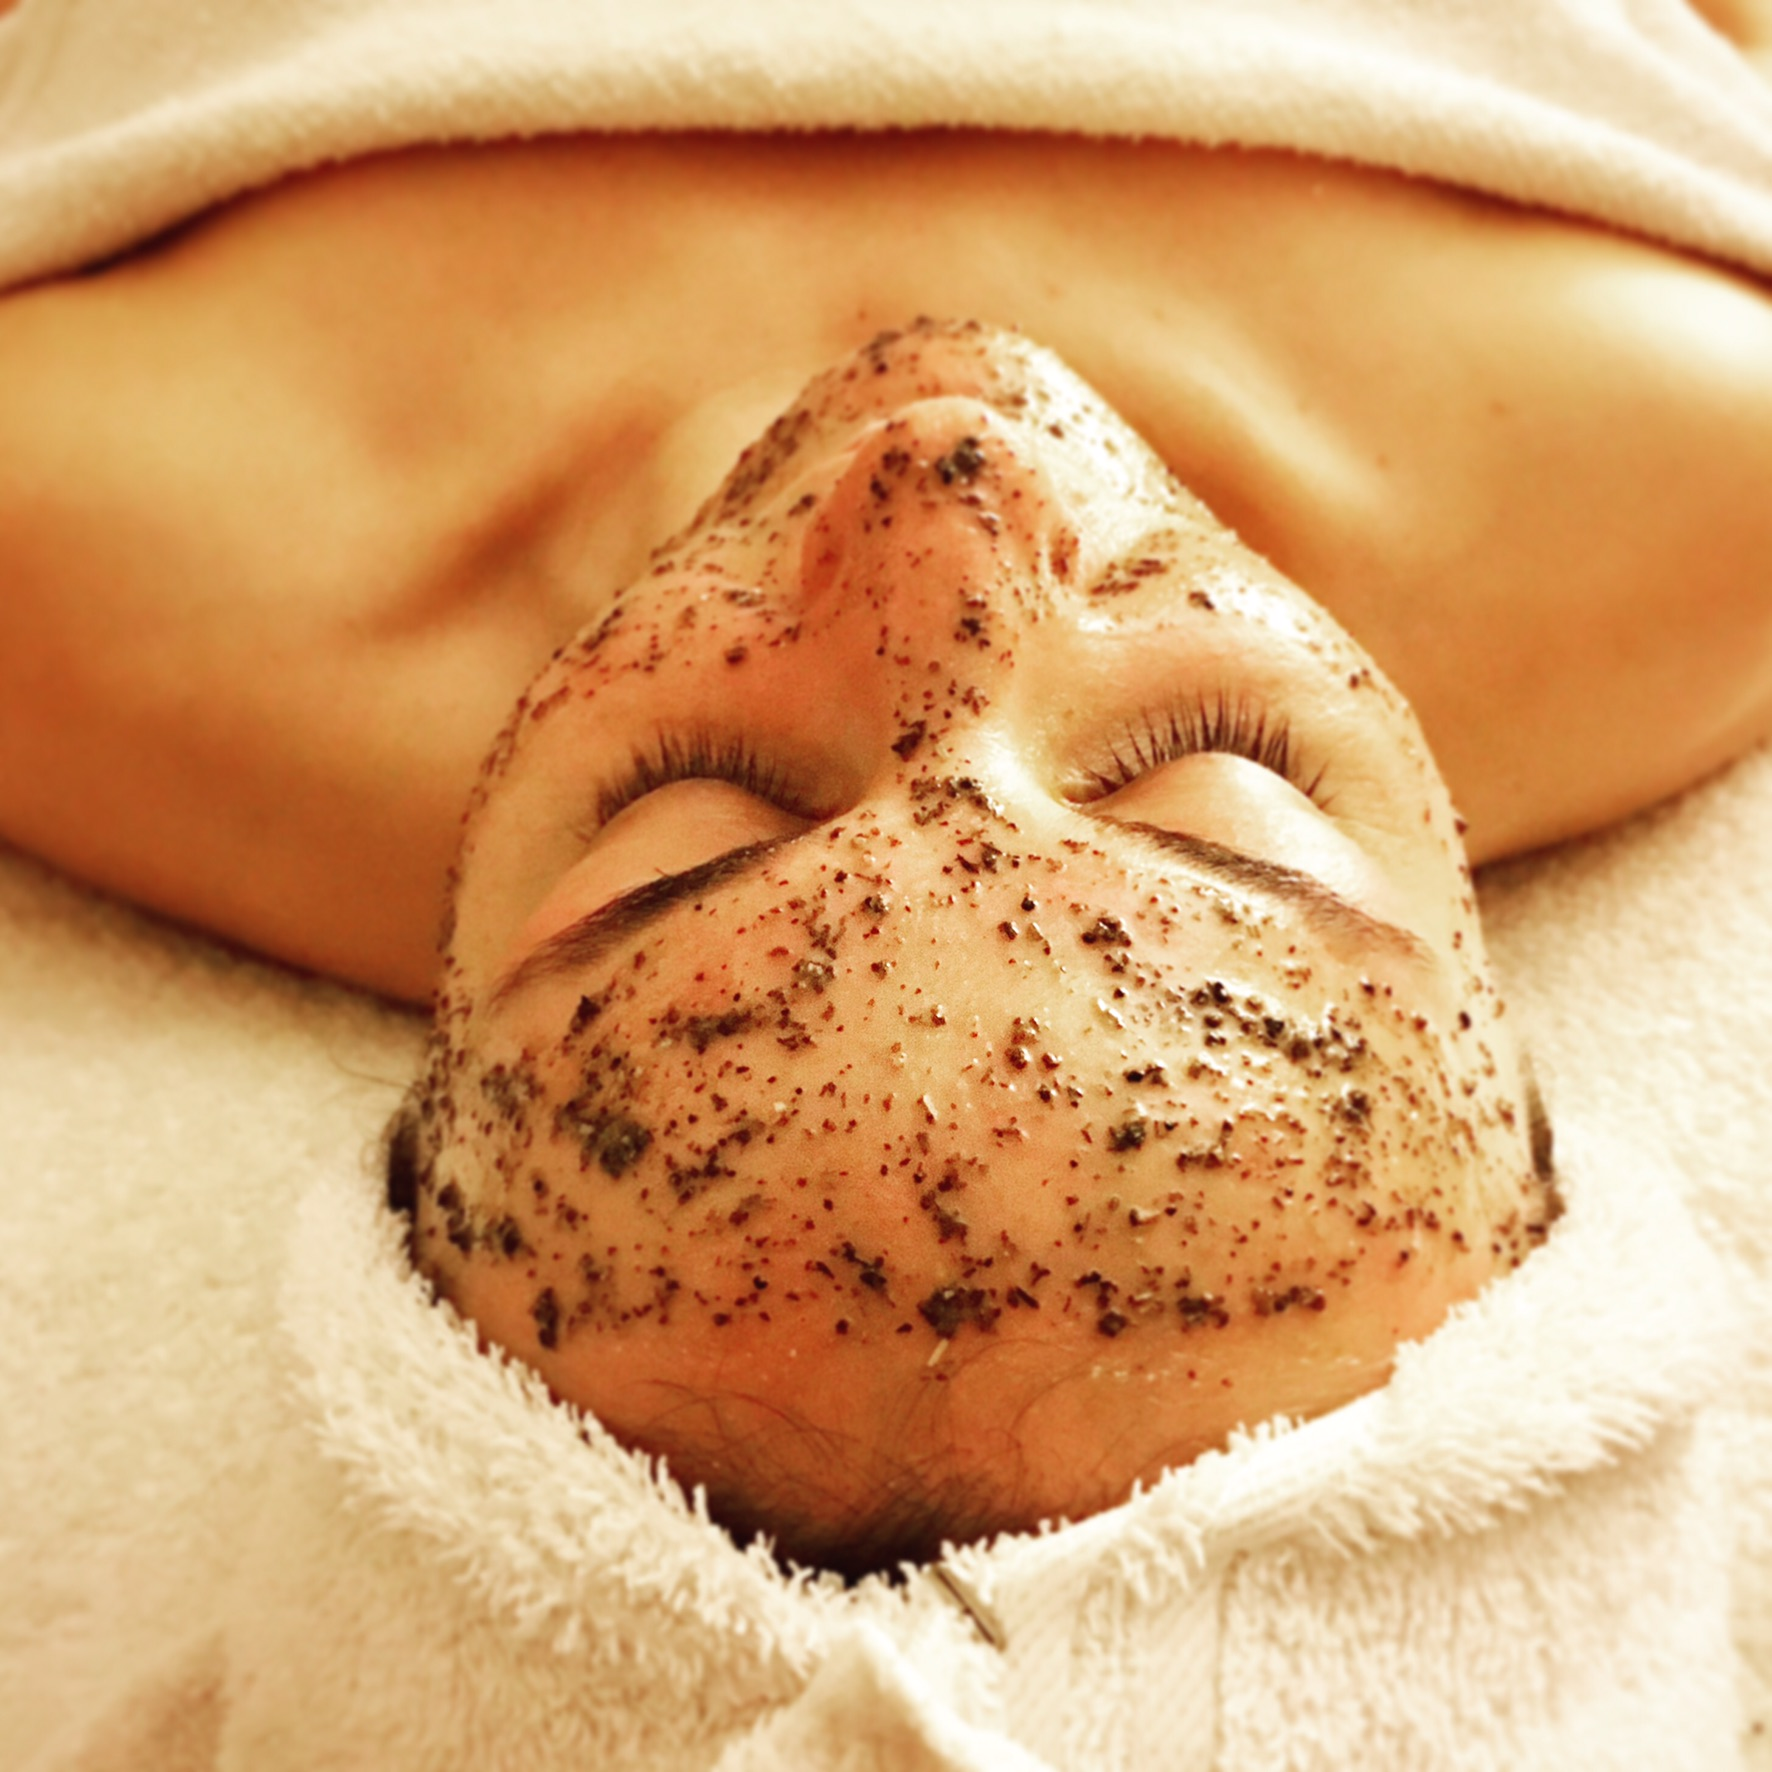 facials - I believe people should have several facials a year and be able to enjoy their treatments. I do not sell you any products during your facial. I want you to relax and have your skin professionally cleaned. Feel free to ask me any questions about your skin and regimen during your facial.